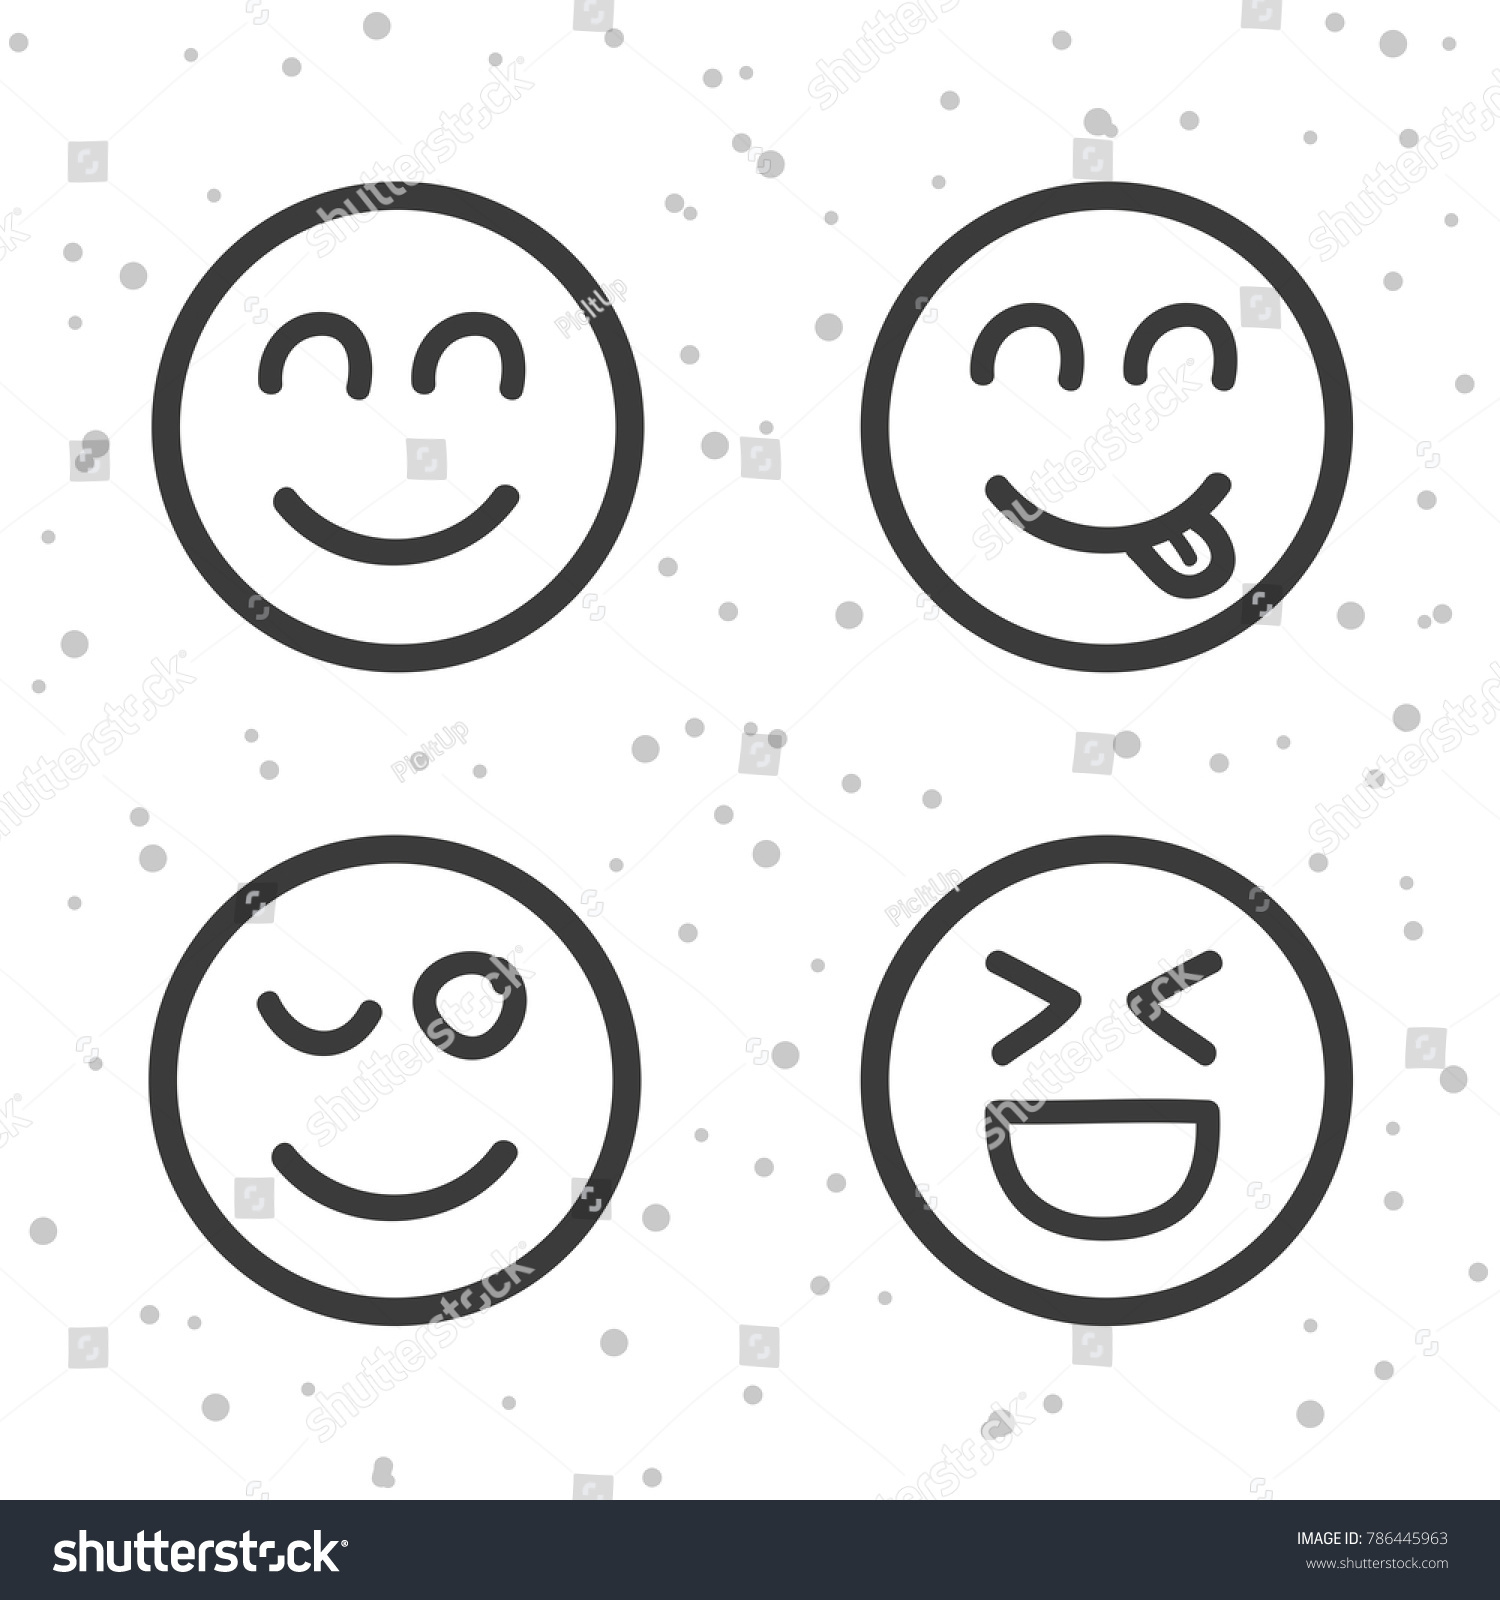 Happy smiley icons laughing emoticons symbols stock vector happy smiley icons laughing emoticons symbols buycottarizona Choice Image